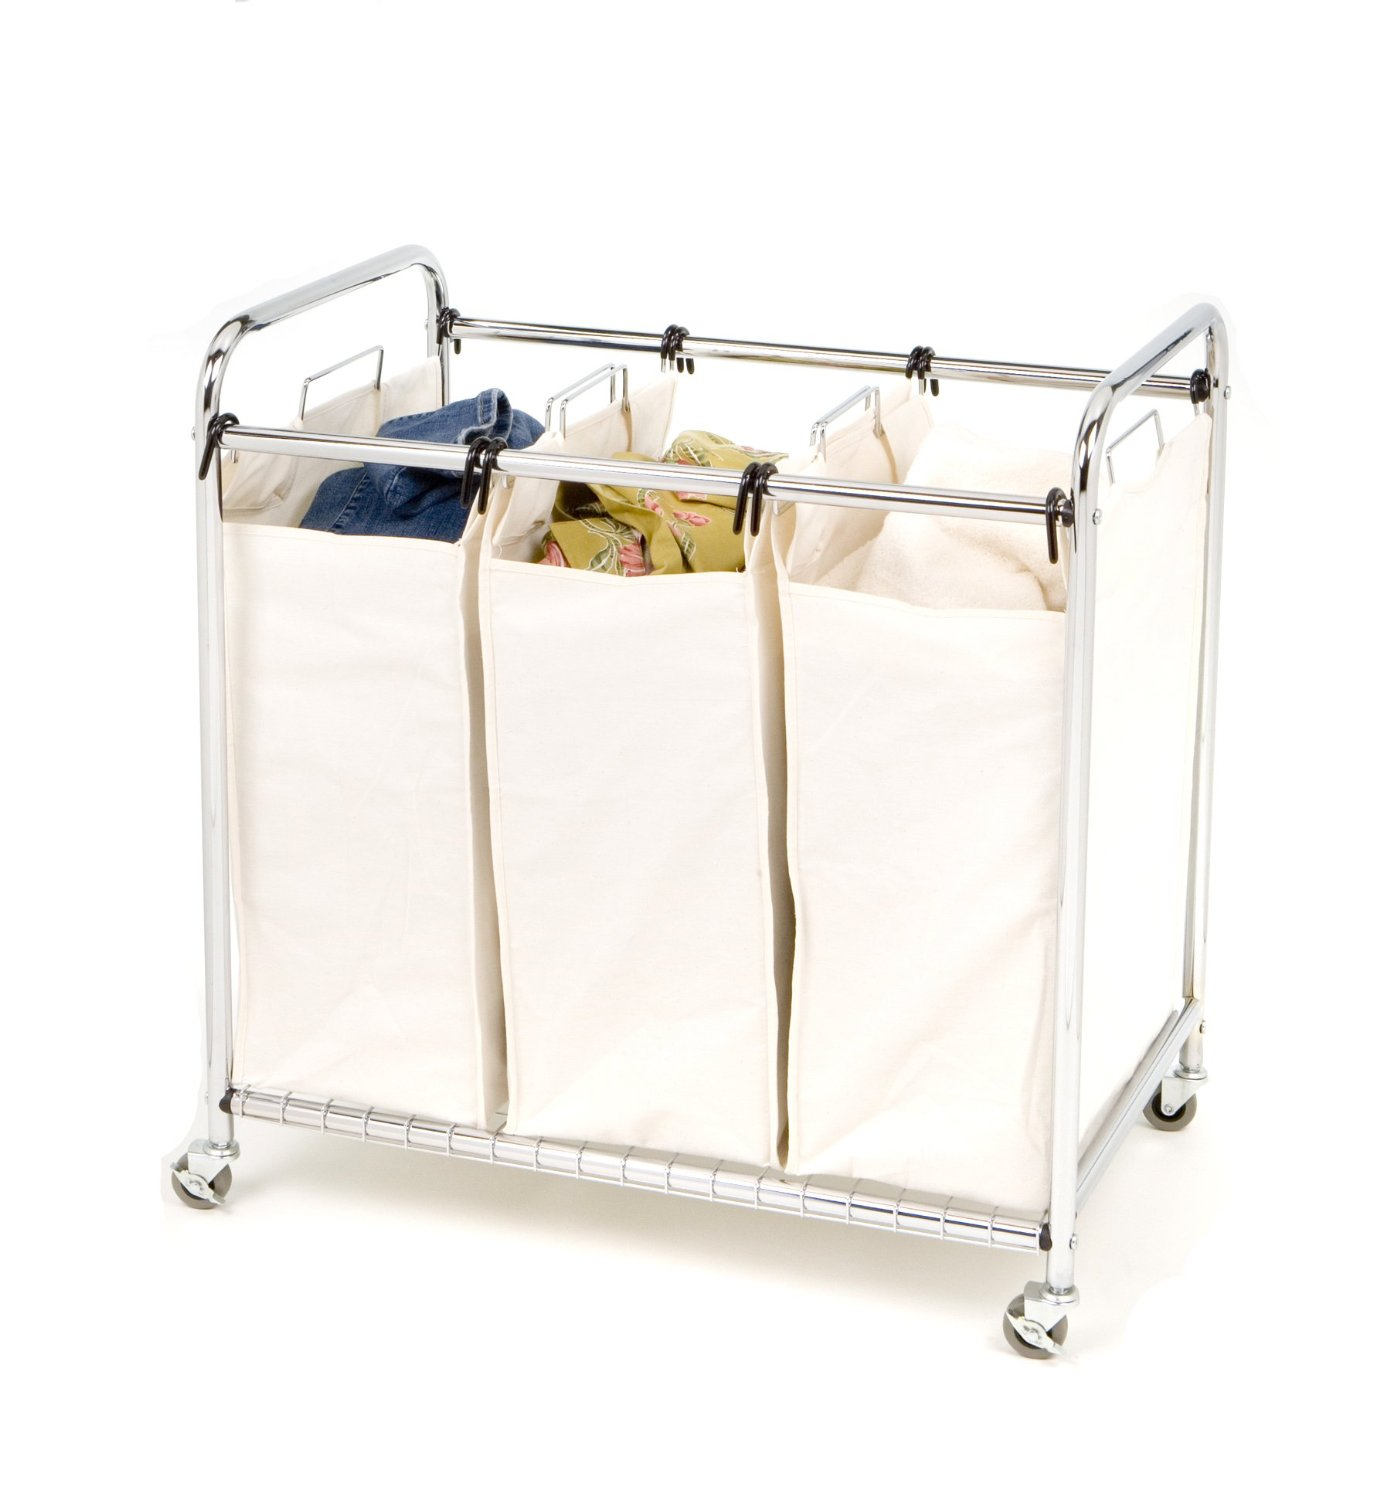 Elegant Laundry Hamper Nice Looking Laundry Basket On Wheels Ideas Custom Home